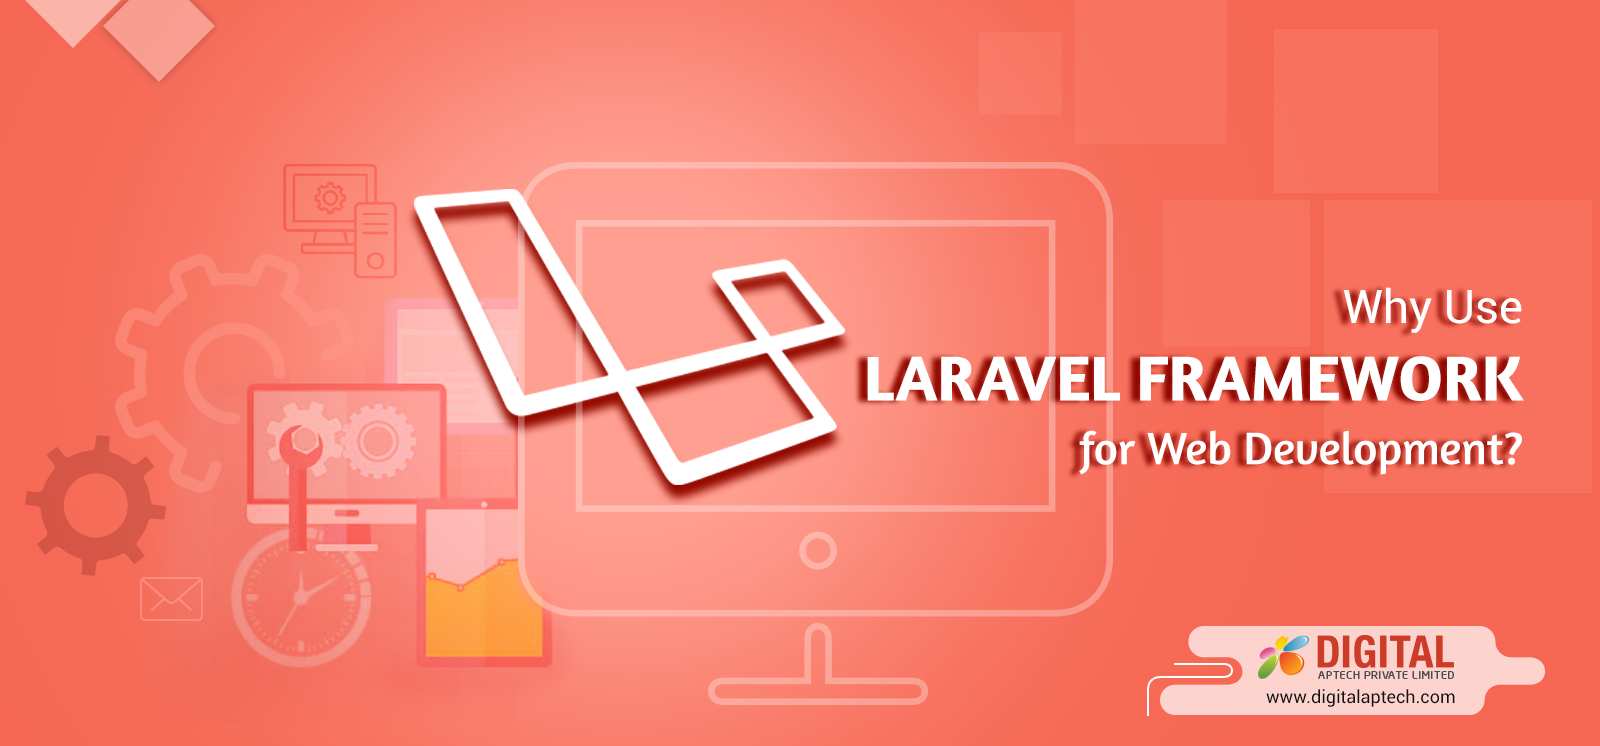 Top 4 Advantages of Using Laravel for Web Development